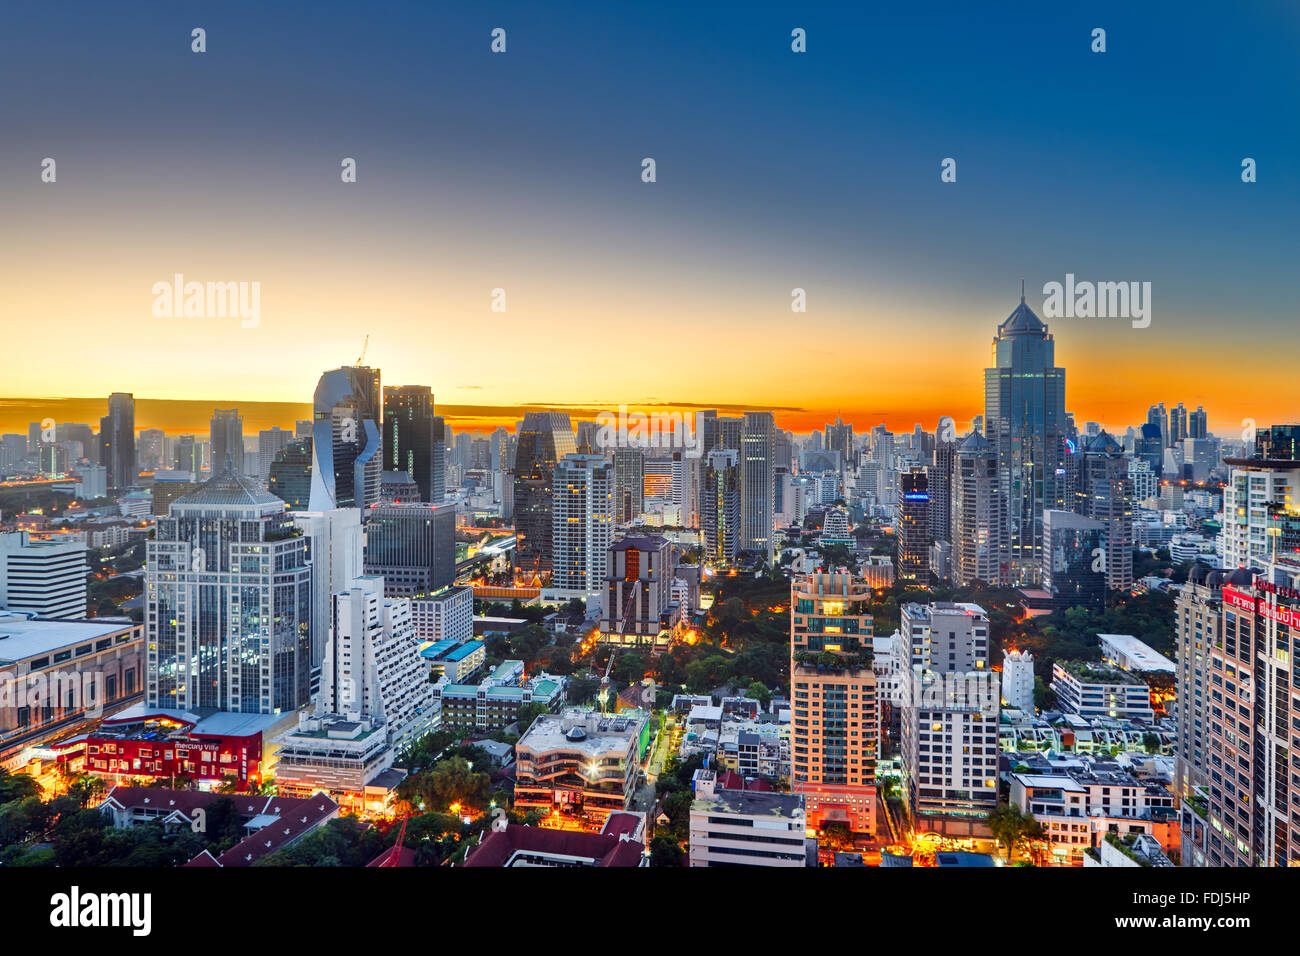 Elevated city view at sunrise. Bangkok, Thailand. - Stock Image